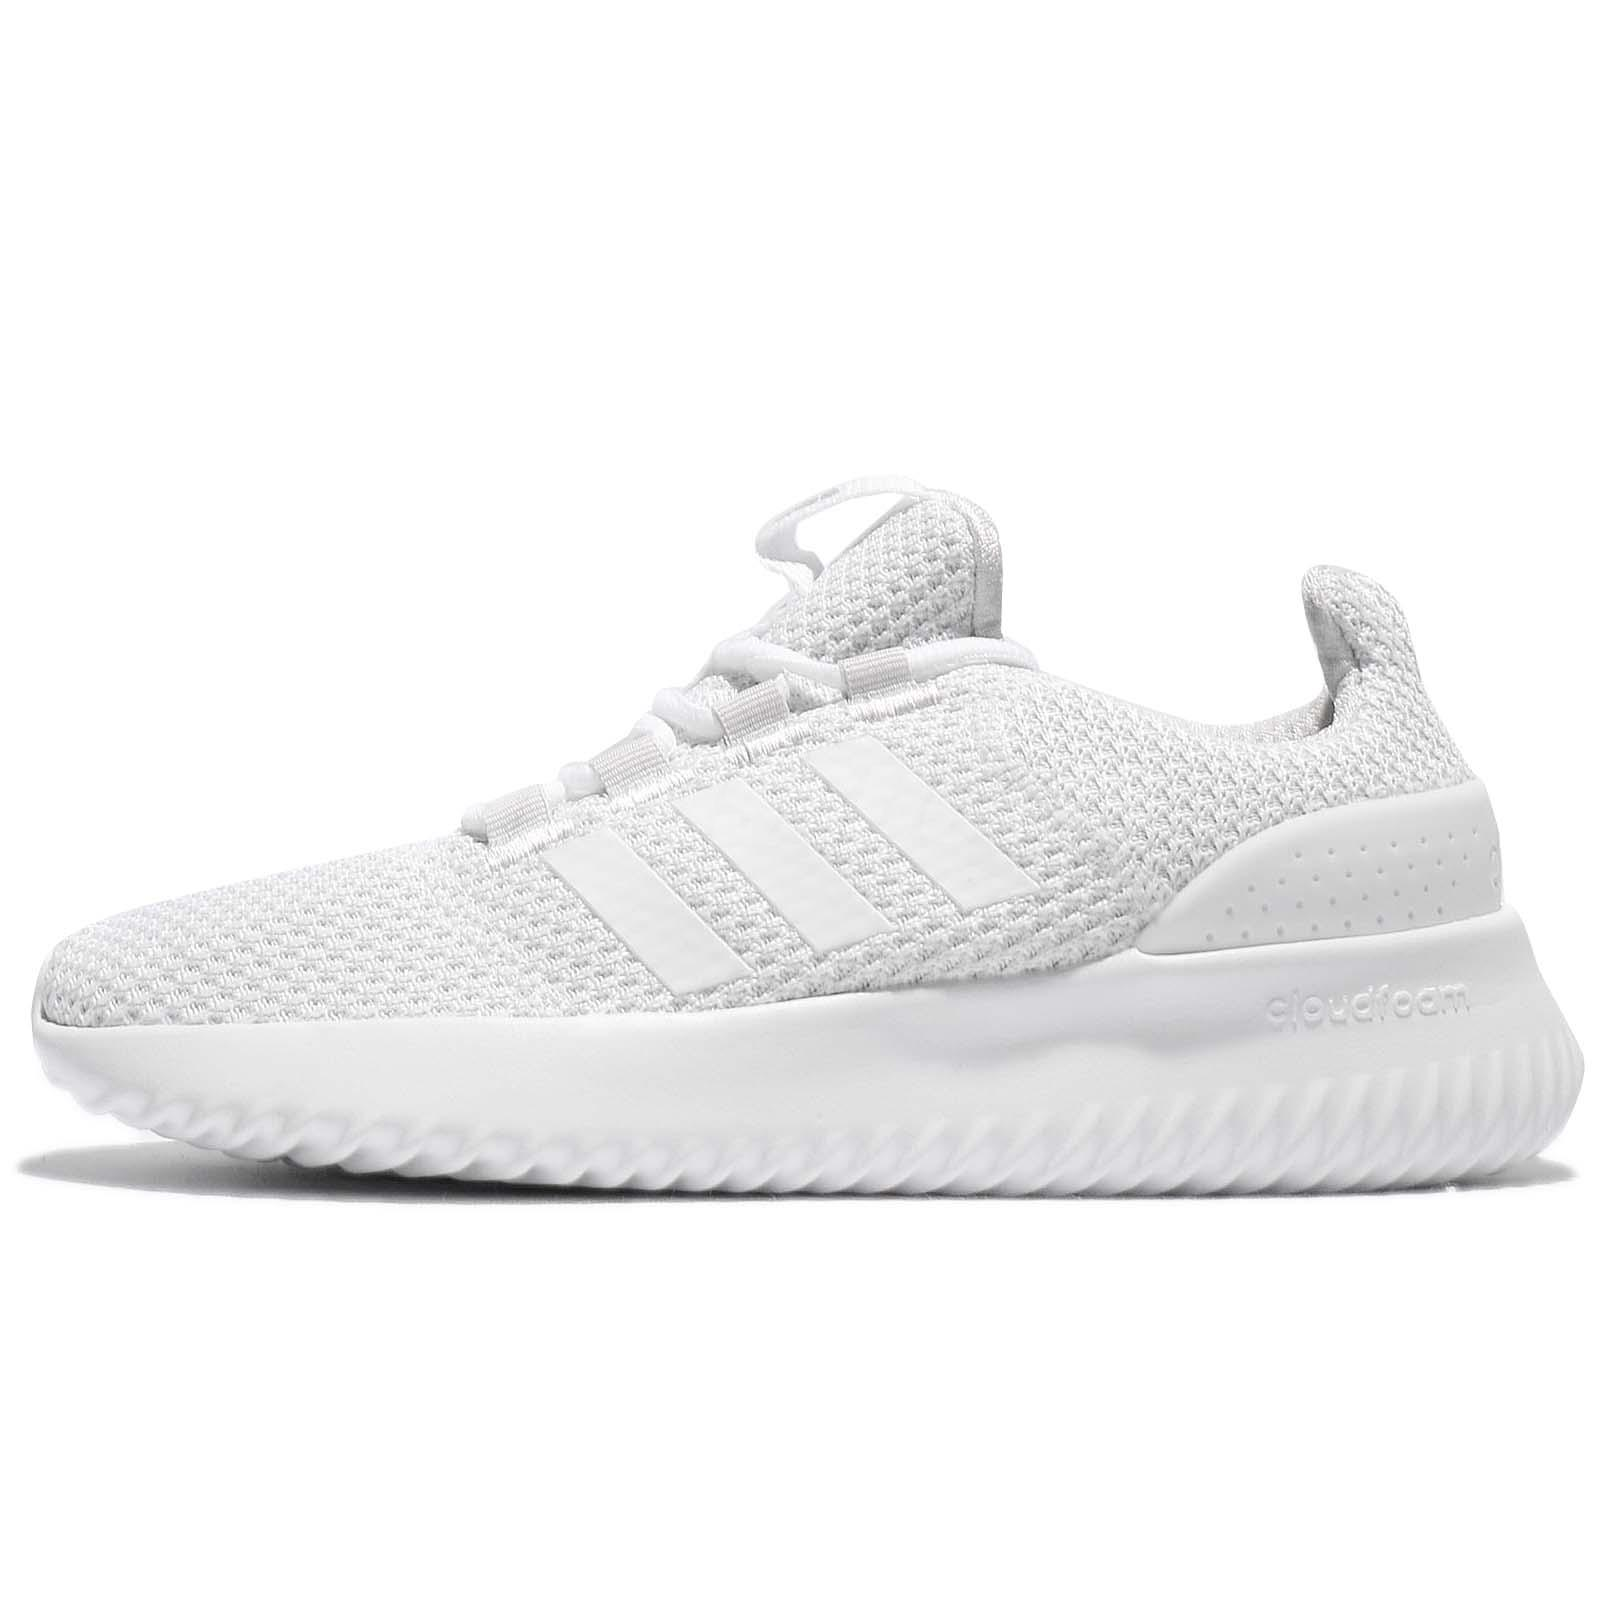 promo code 97d88 01c5a adidas Neo Cloudfoam Ultimate Grey White Women Running Shoes Trainers BC0034